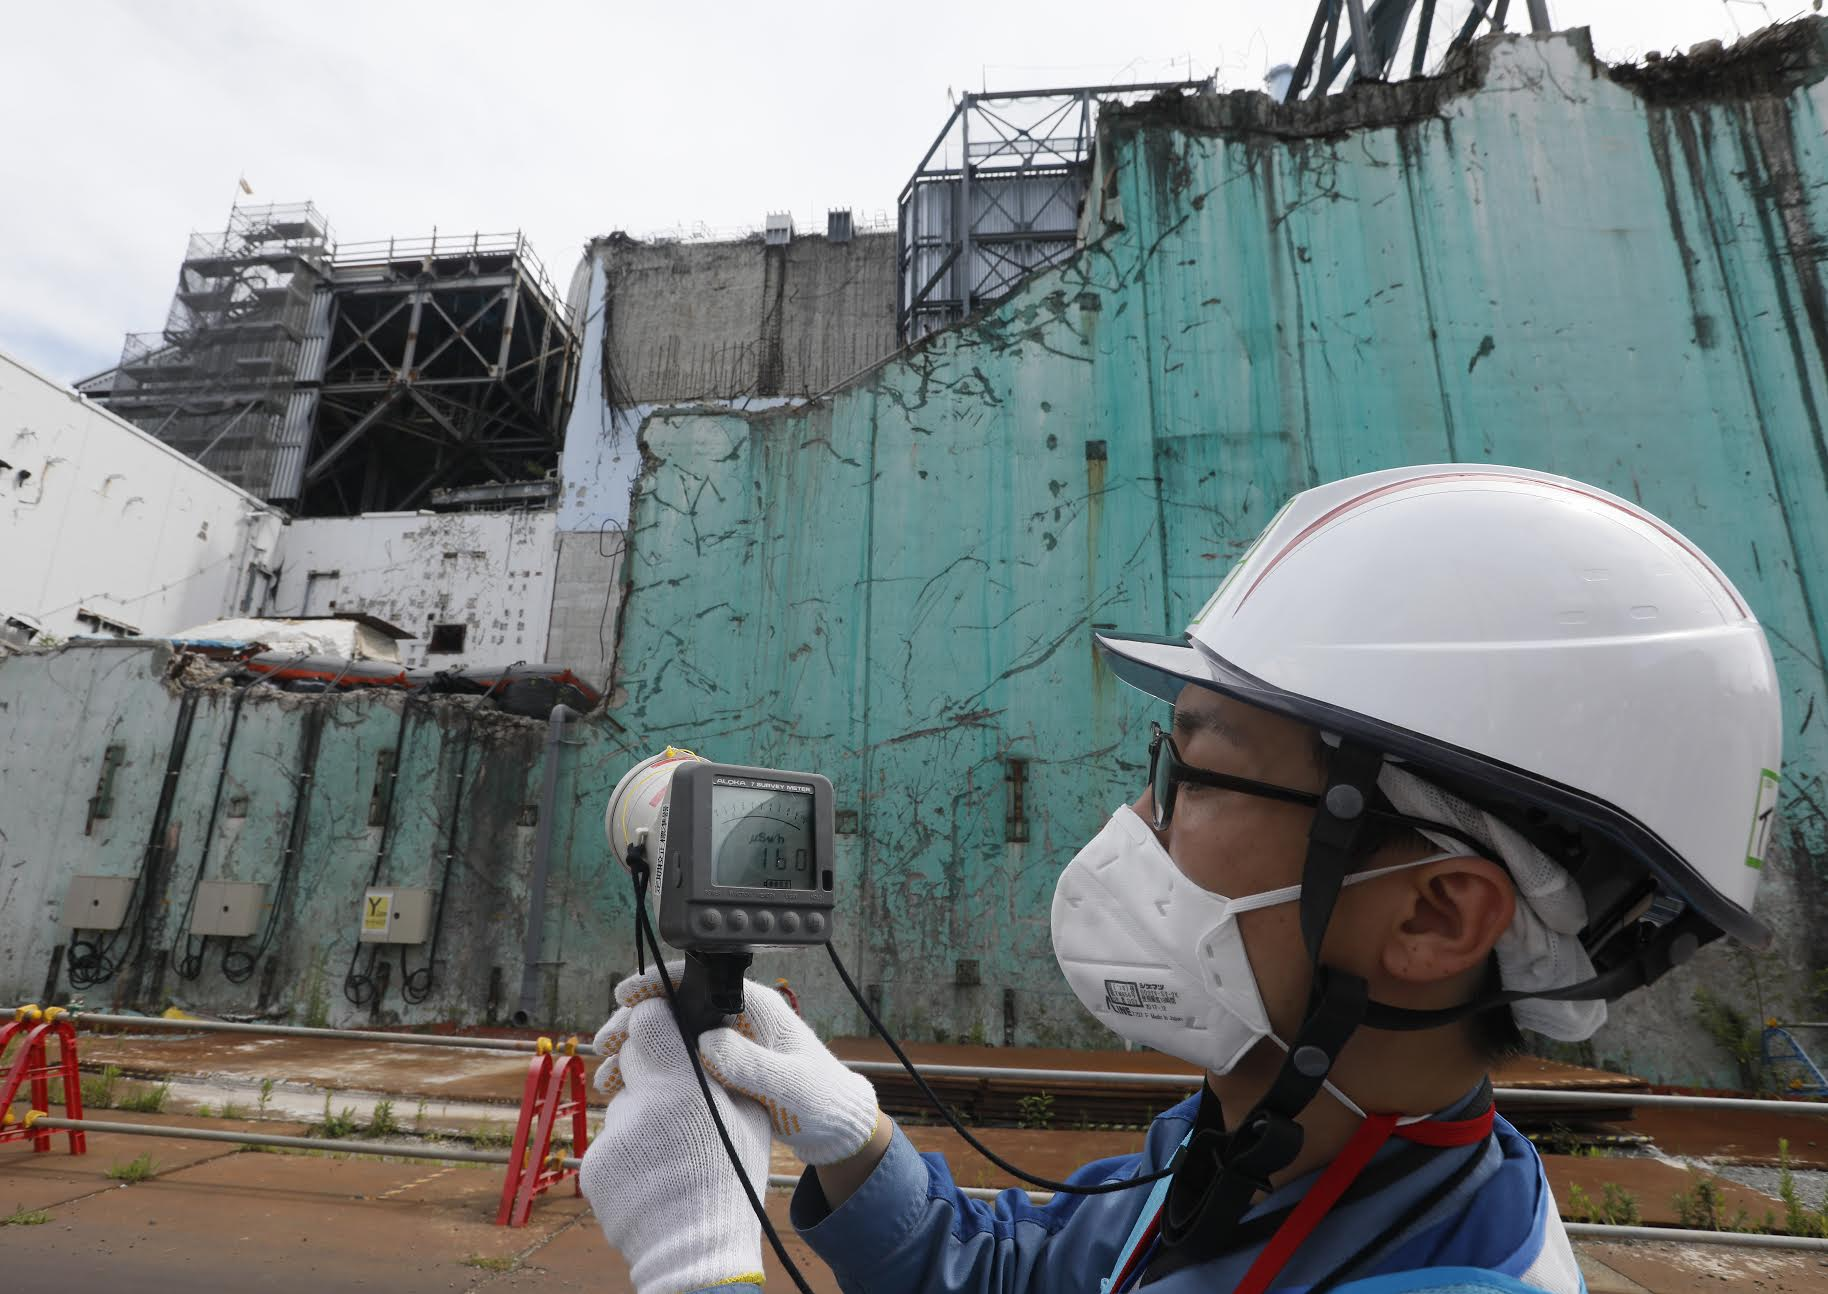 In this picture taken on July 27, 2018, a staff member of the Tokyo Electric Power Company measures radiation levels between reactor unit 2 and unit 3 (Rear) at the tsunami-crippled Tokyo Electric Power Company Fukushima Dai-ichi nuclear power plant in Okuma, Fukushima prefecture.